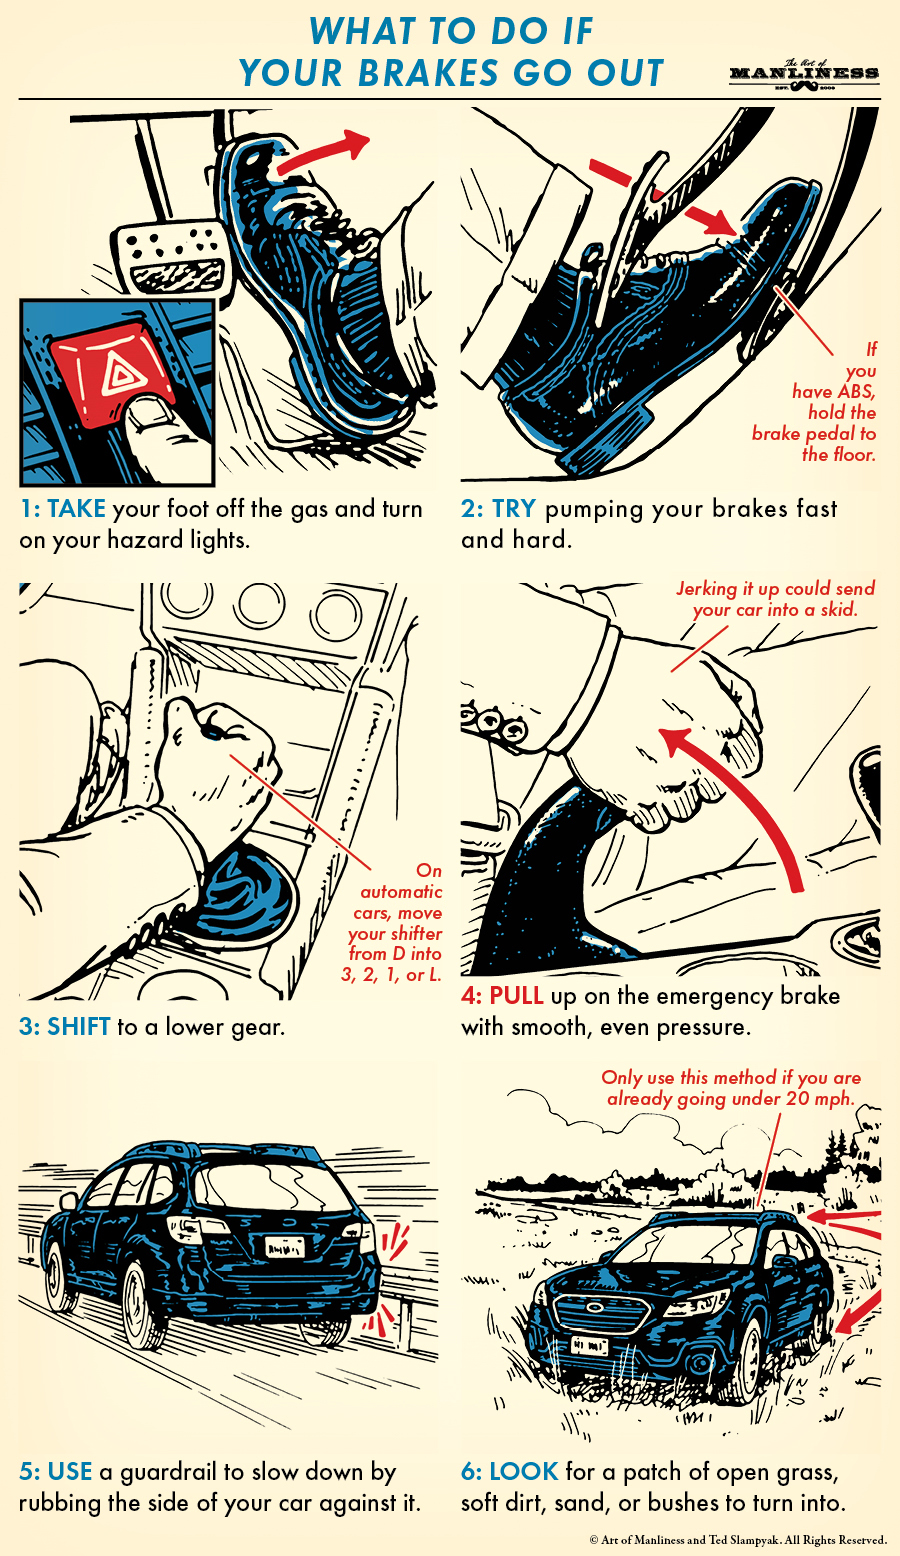 Illustration of what to do when your brakes go out.